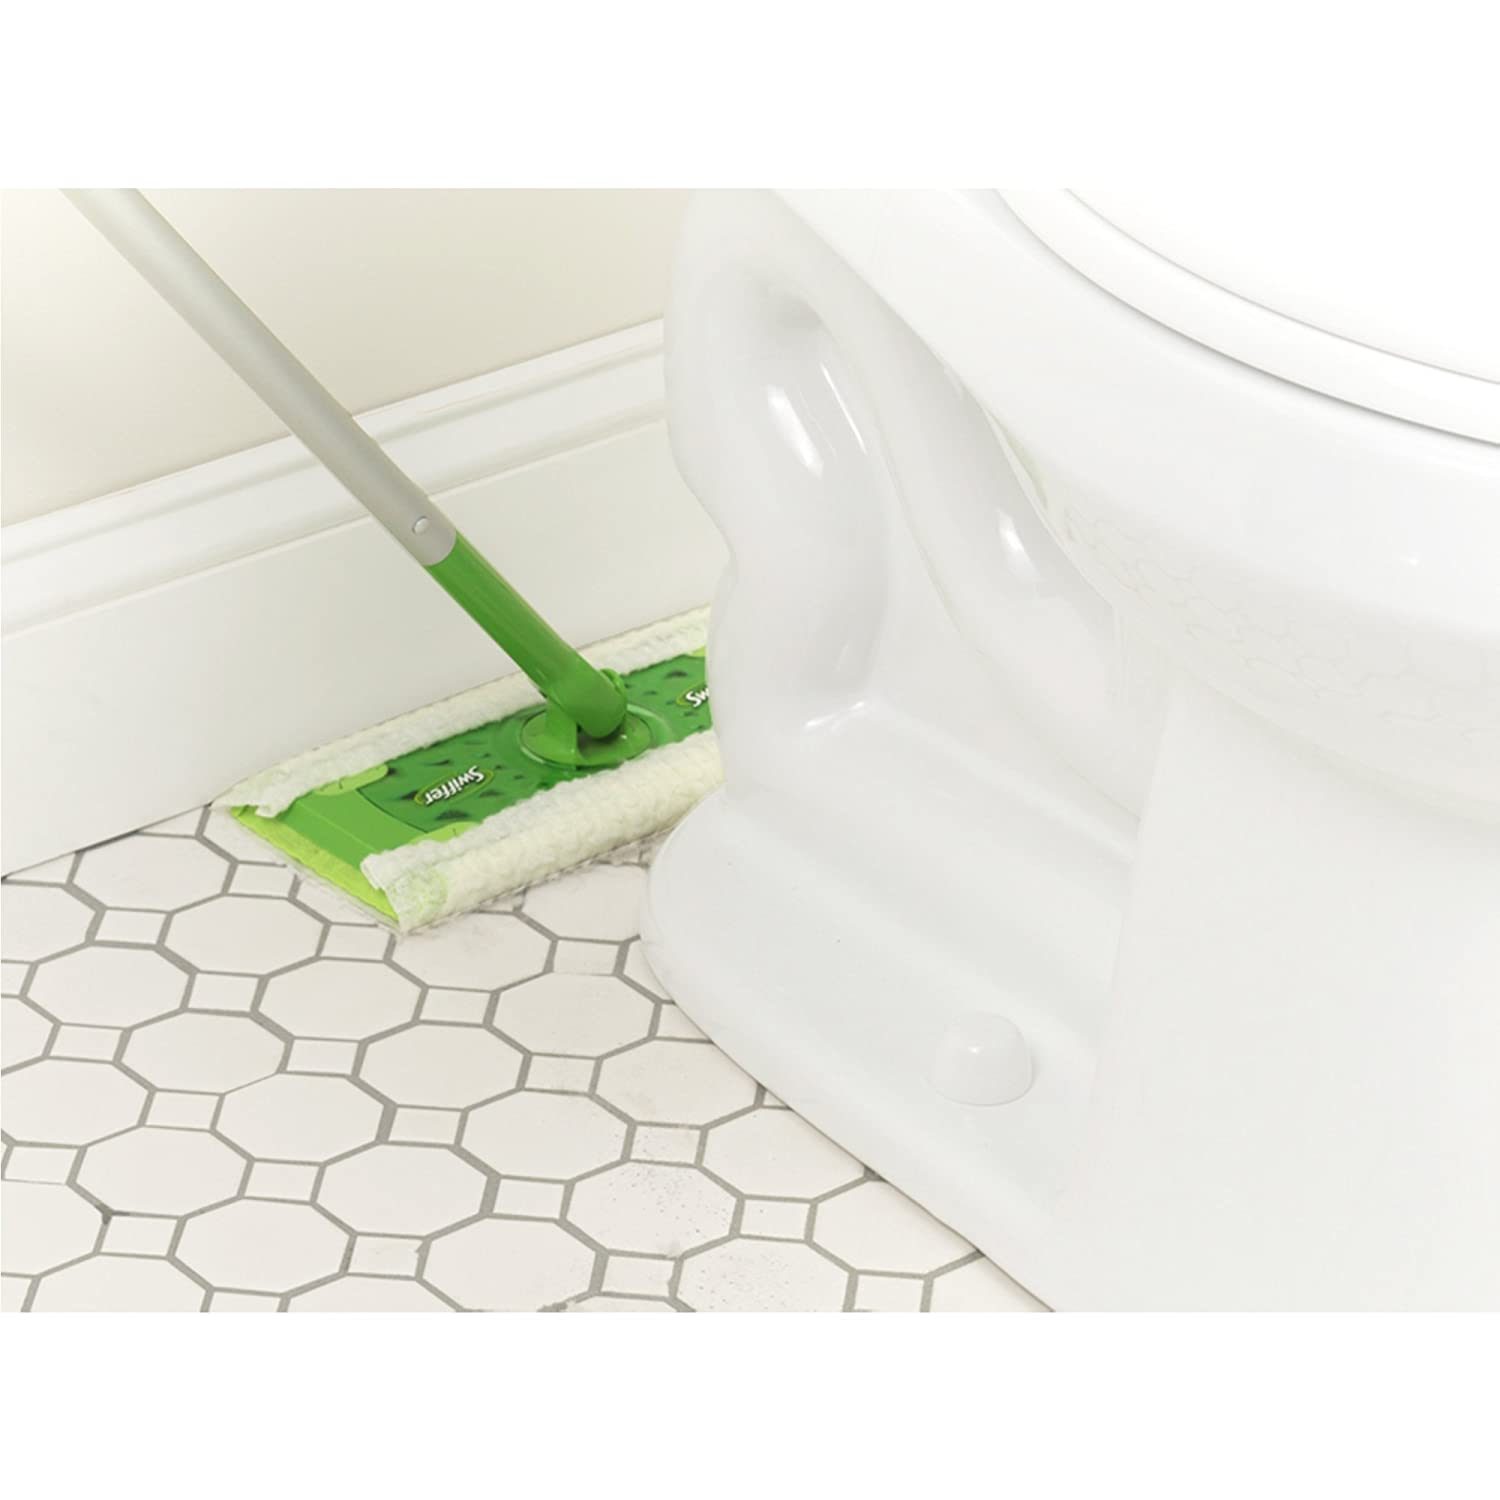 Amazon swiffer sweeper 3 in 1 mop and broom floor cleaner amazon swiffer sweeper 3 in 1 mop and broom floor cleaner swiffer dusters disposable unscented cleaning dusters starter kit health personal care dailygadgetfo Gallery